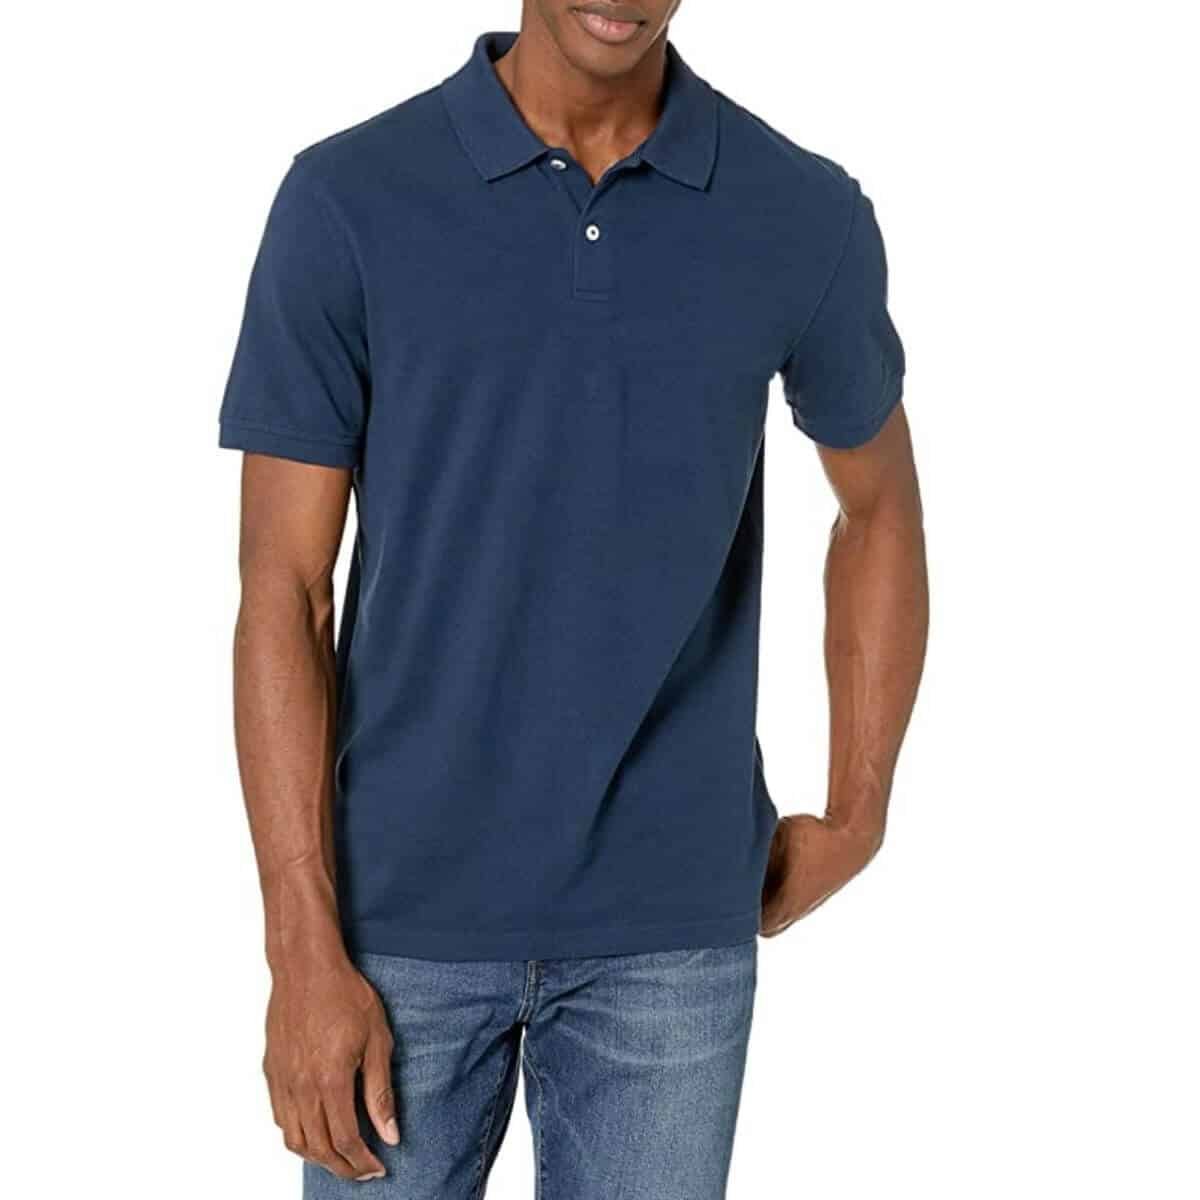 Top half of a person wearing a polo shirt and jeans.